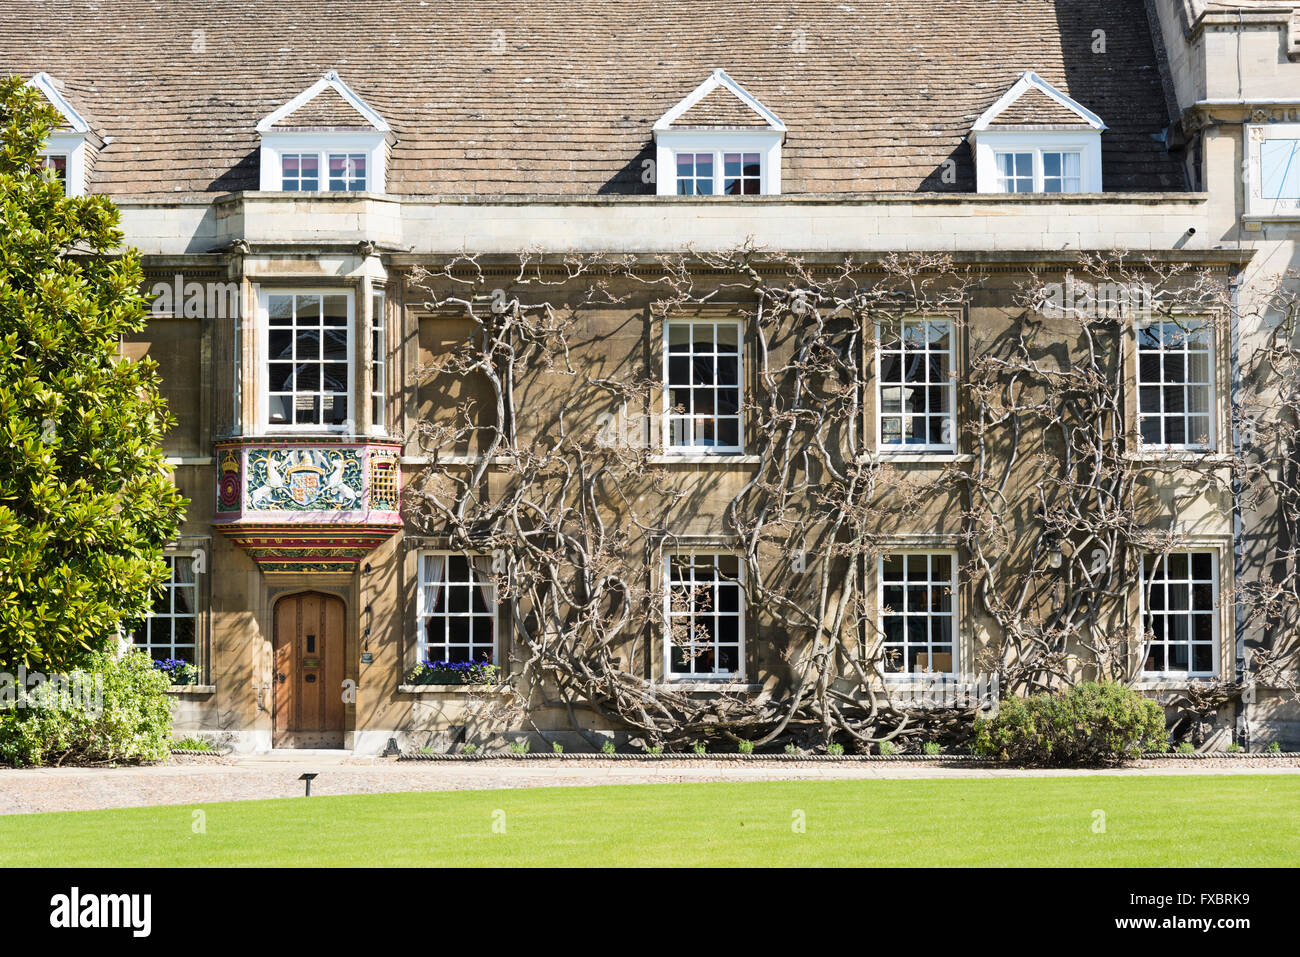 A courtyard and old buildings at Christ's College Cambridge UK part of the University of Cambridge - Stock Image